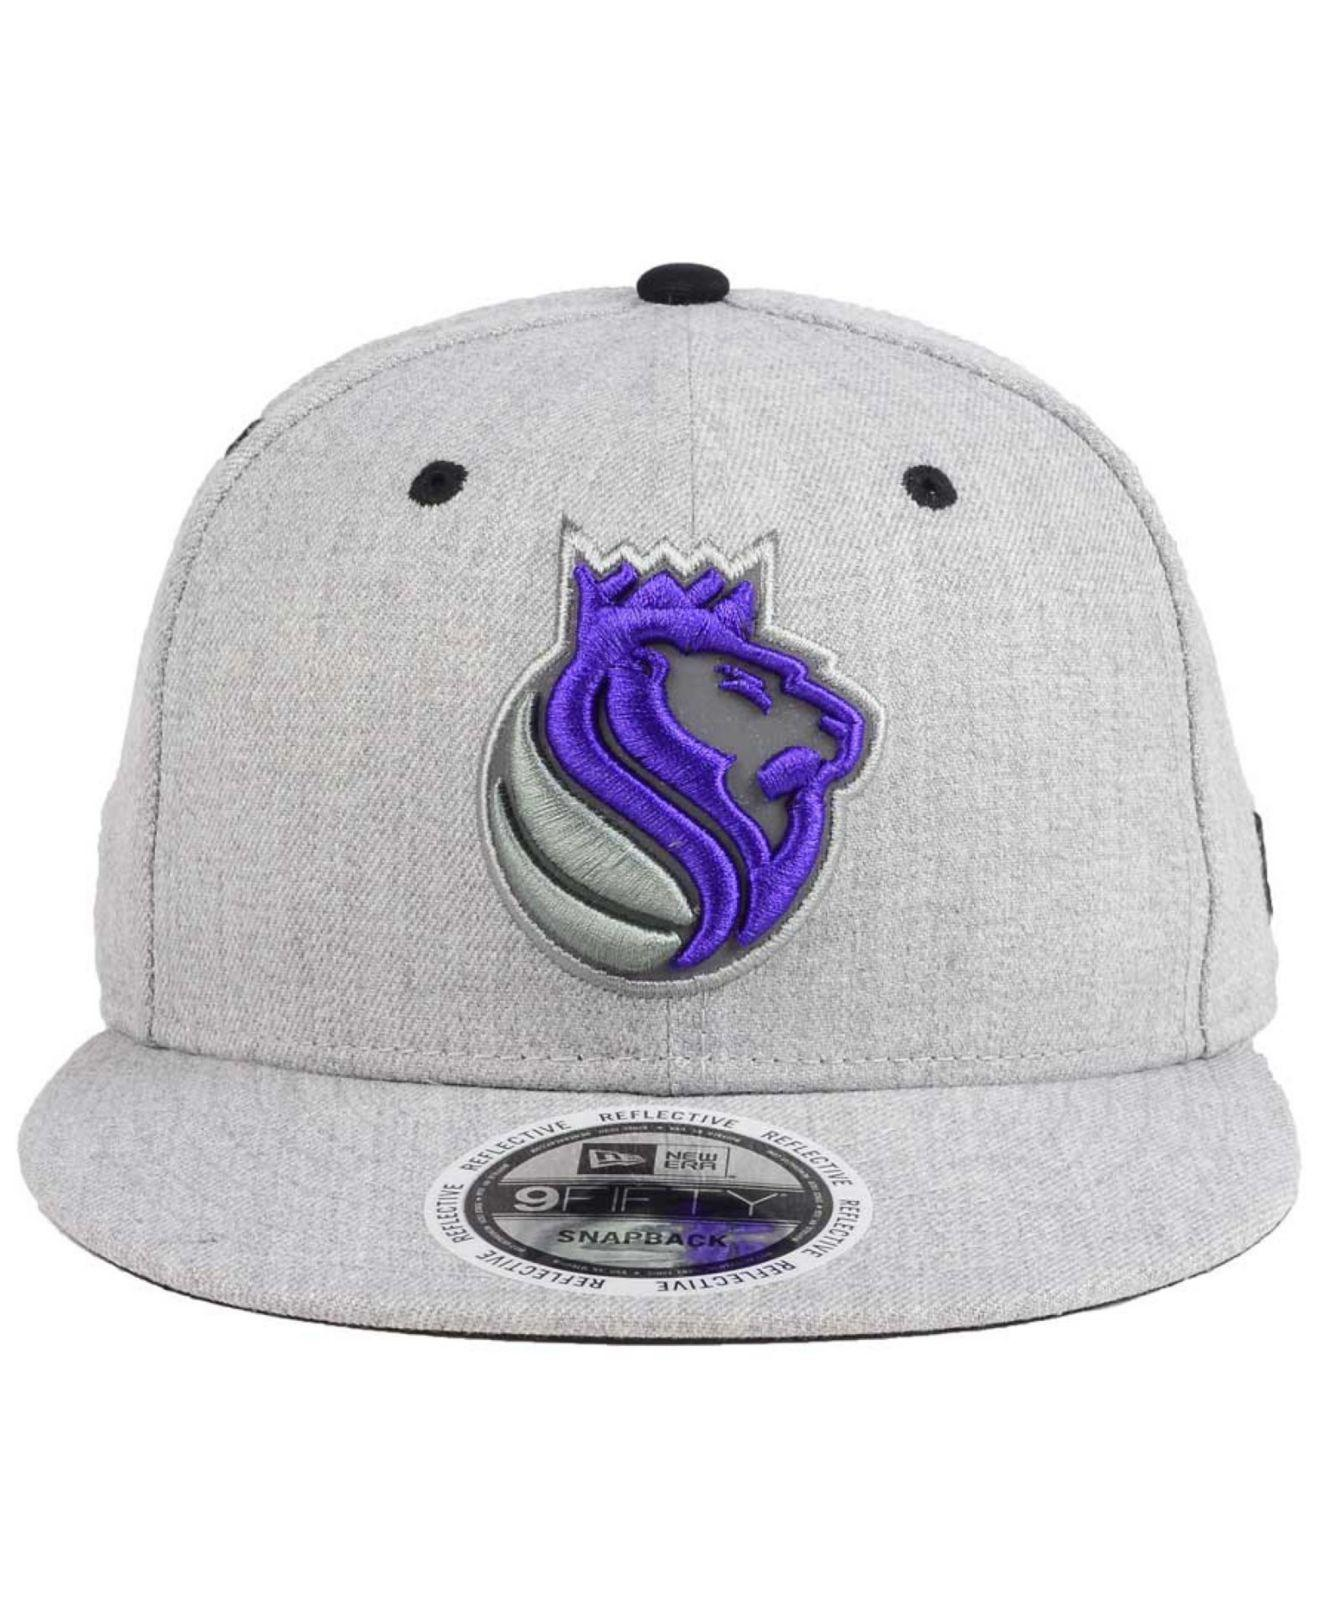 cheap for discount f5307 ebd04 ... purchase lyst ktz sacramento kings total reflective 9fifty snapback cap  for men save 20.0 75e7a 7a6bf